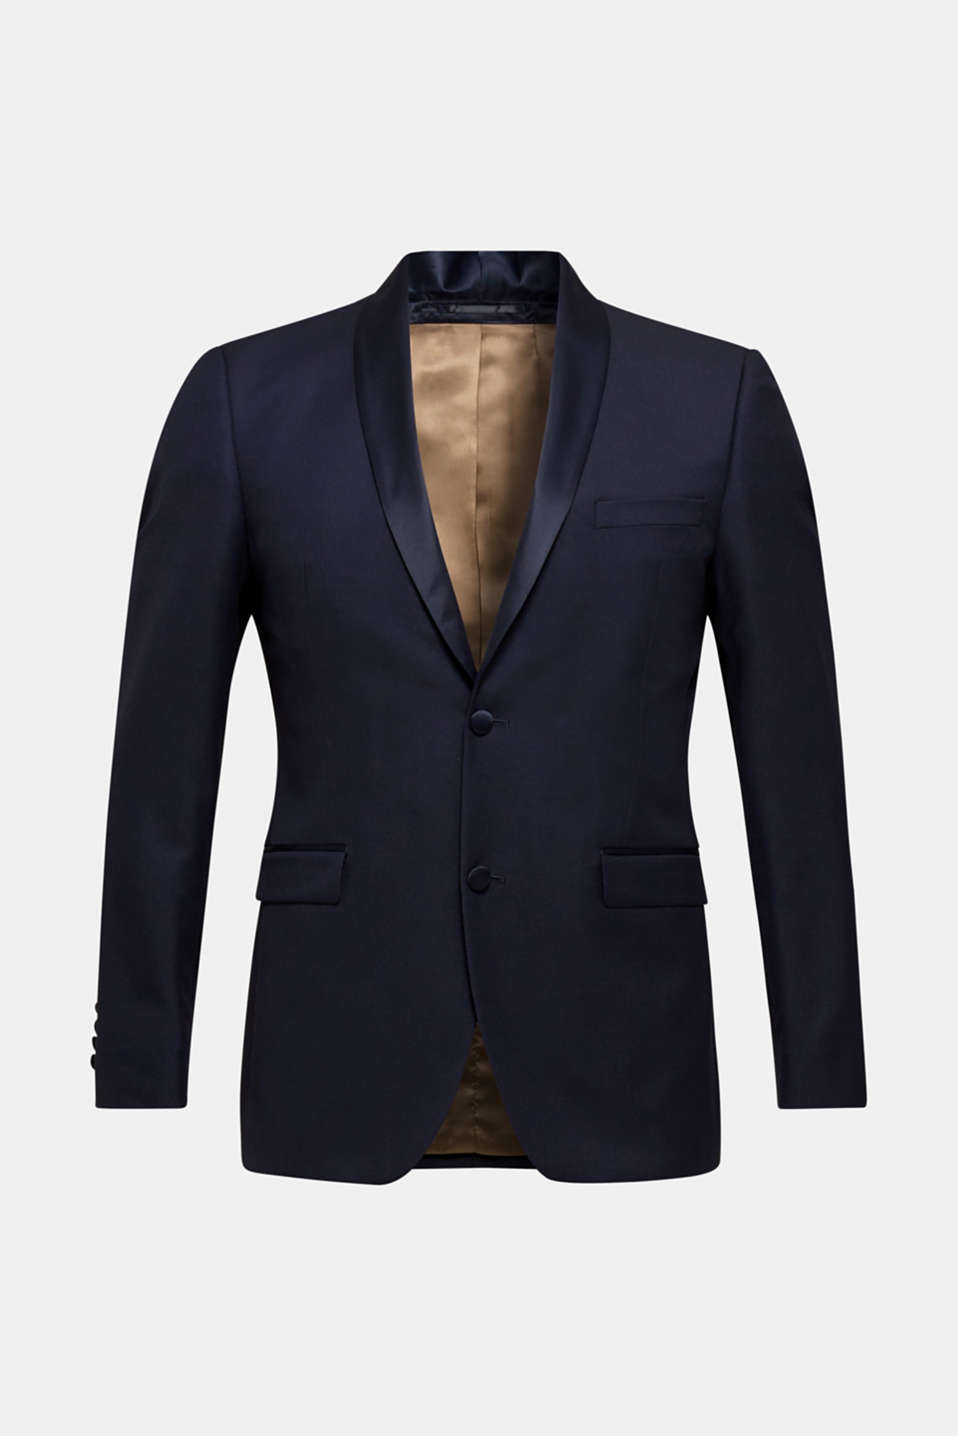 Blazers suit, NAVY, detail image number 7